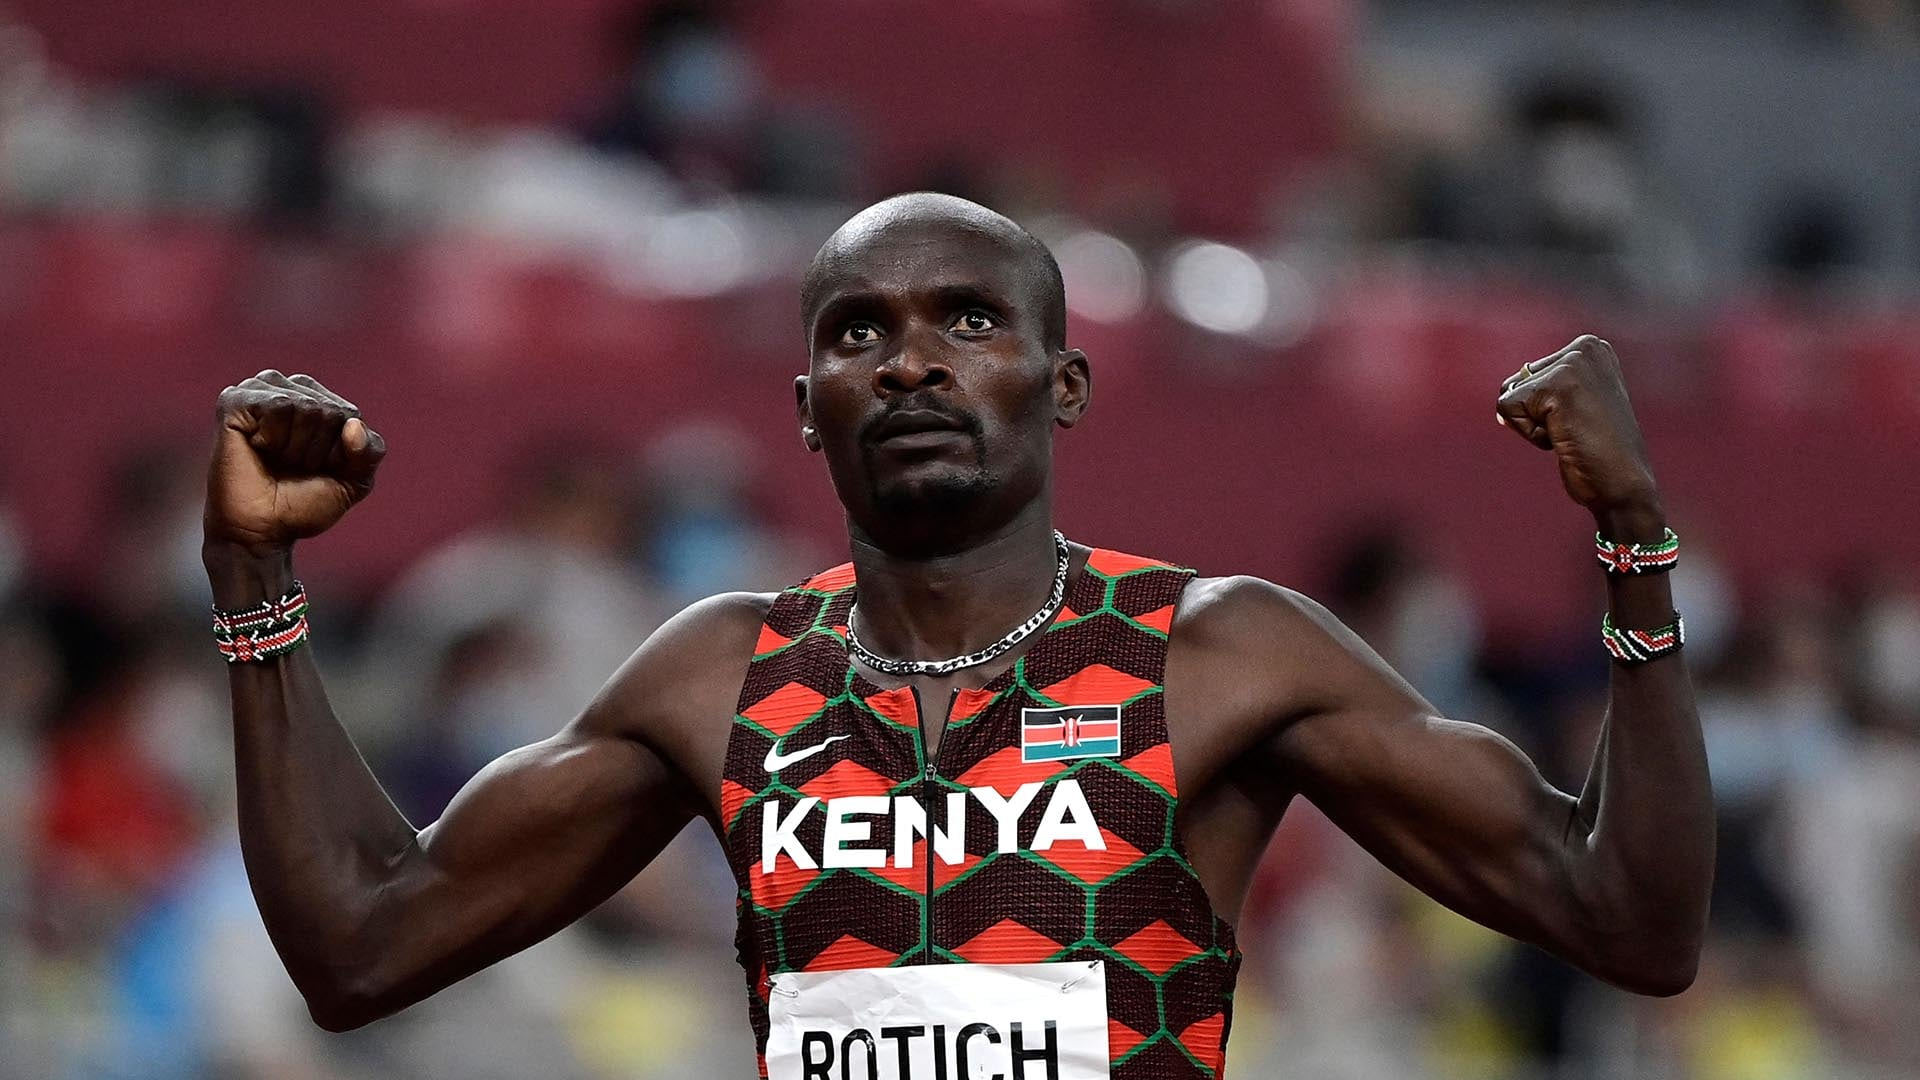 Kenya's Ferguson Cheruiyot Rotich celebrates after winning  in  the men's 800m semi-finals during the Tokyo 2020 Olympic Games at the Olympic Stadium in Tokyo on August 1, 2021. (Photo by Javier SORIANO / AFP) (Photo by JAVIER SORIANO/AFP via Getty Images)